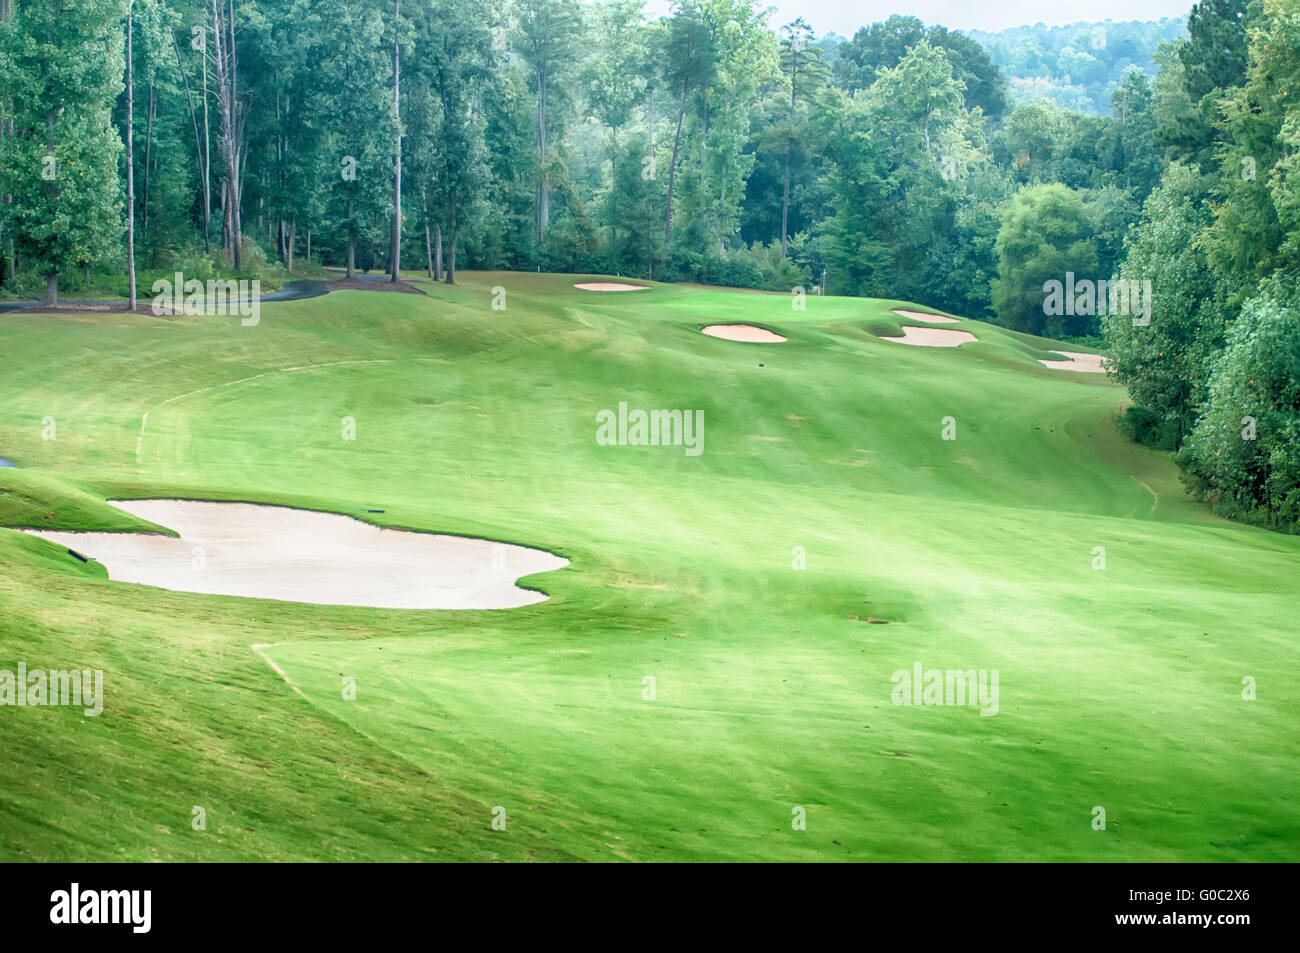 luxurious golf course on a cloudy day - Stock Image